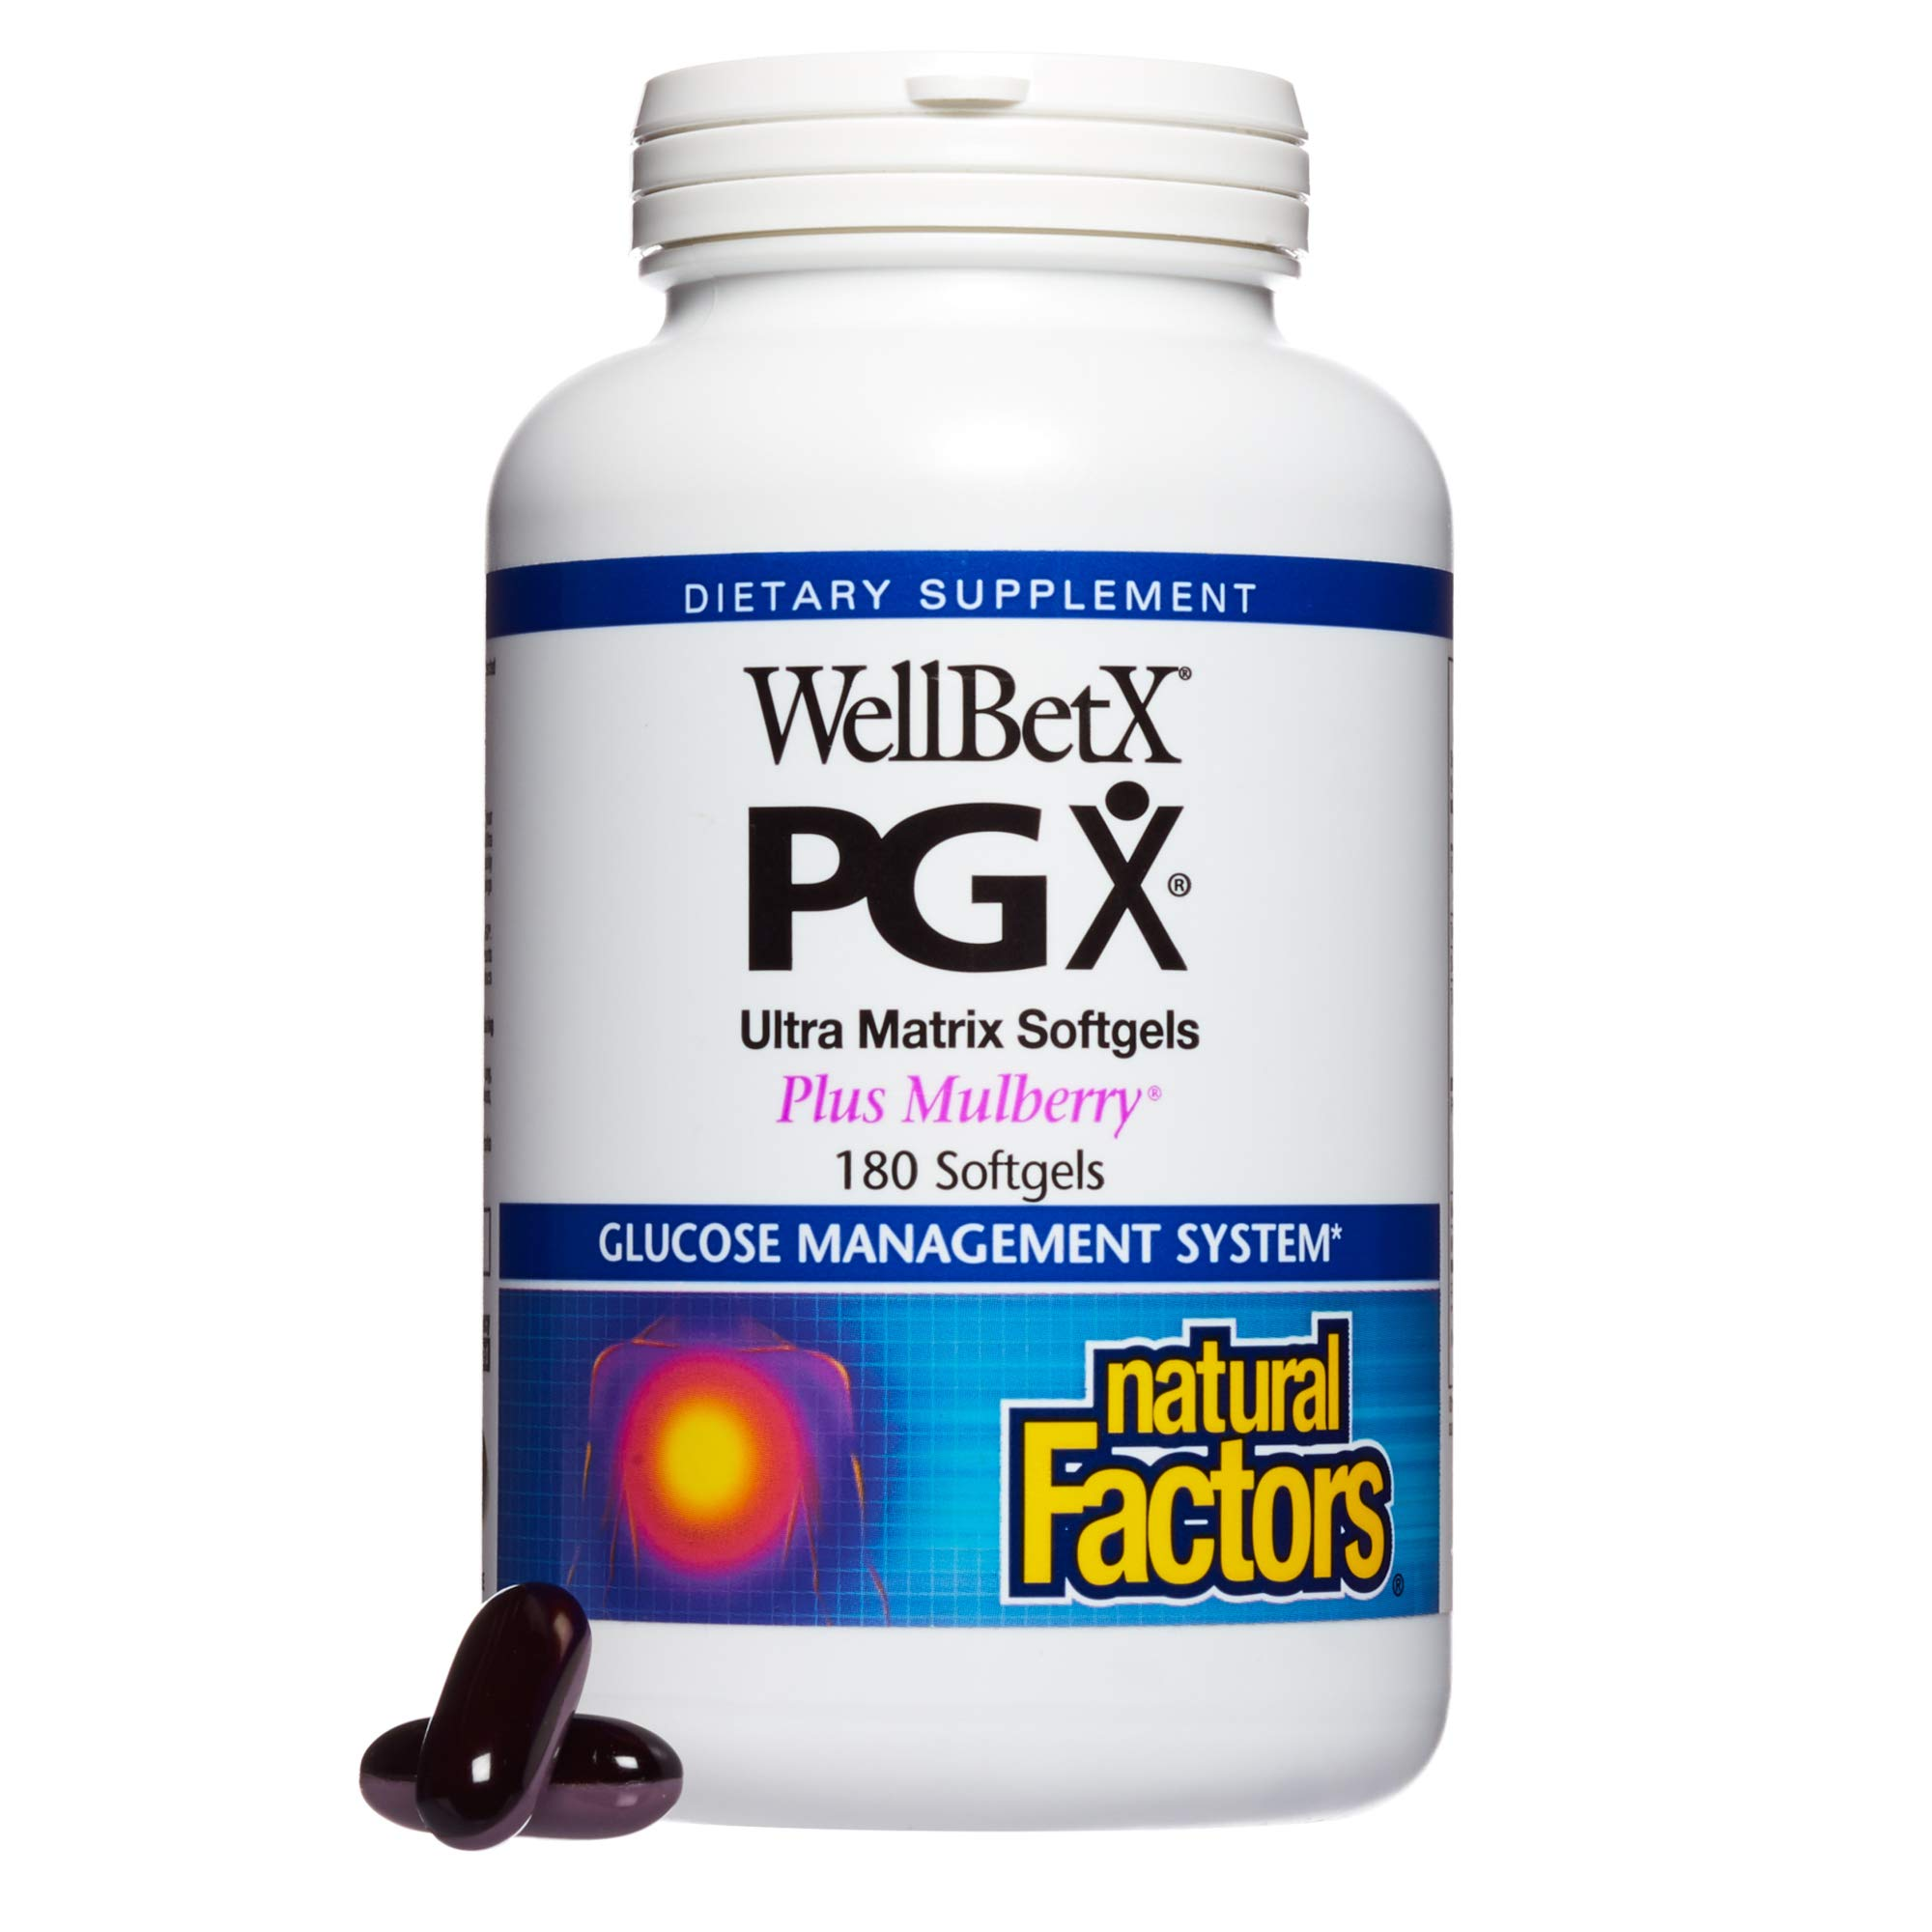 PGX by Natural Factors, WellBetX Ultra Matrix Plus Mulberry, Supports Healthy Weight Management and Helps Reduce Appetite, 180 softgels (90 servings) by Natural Factors